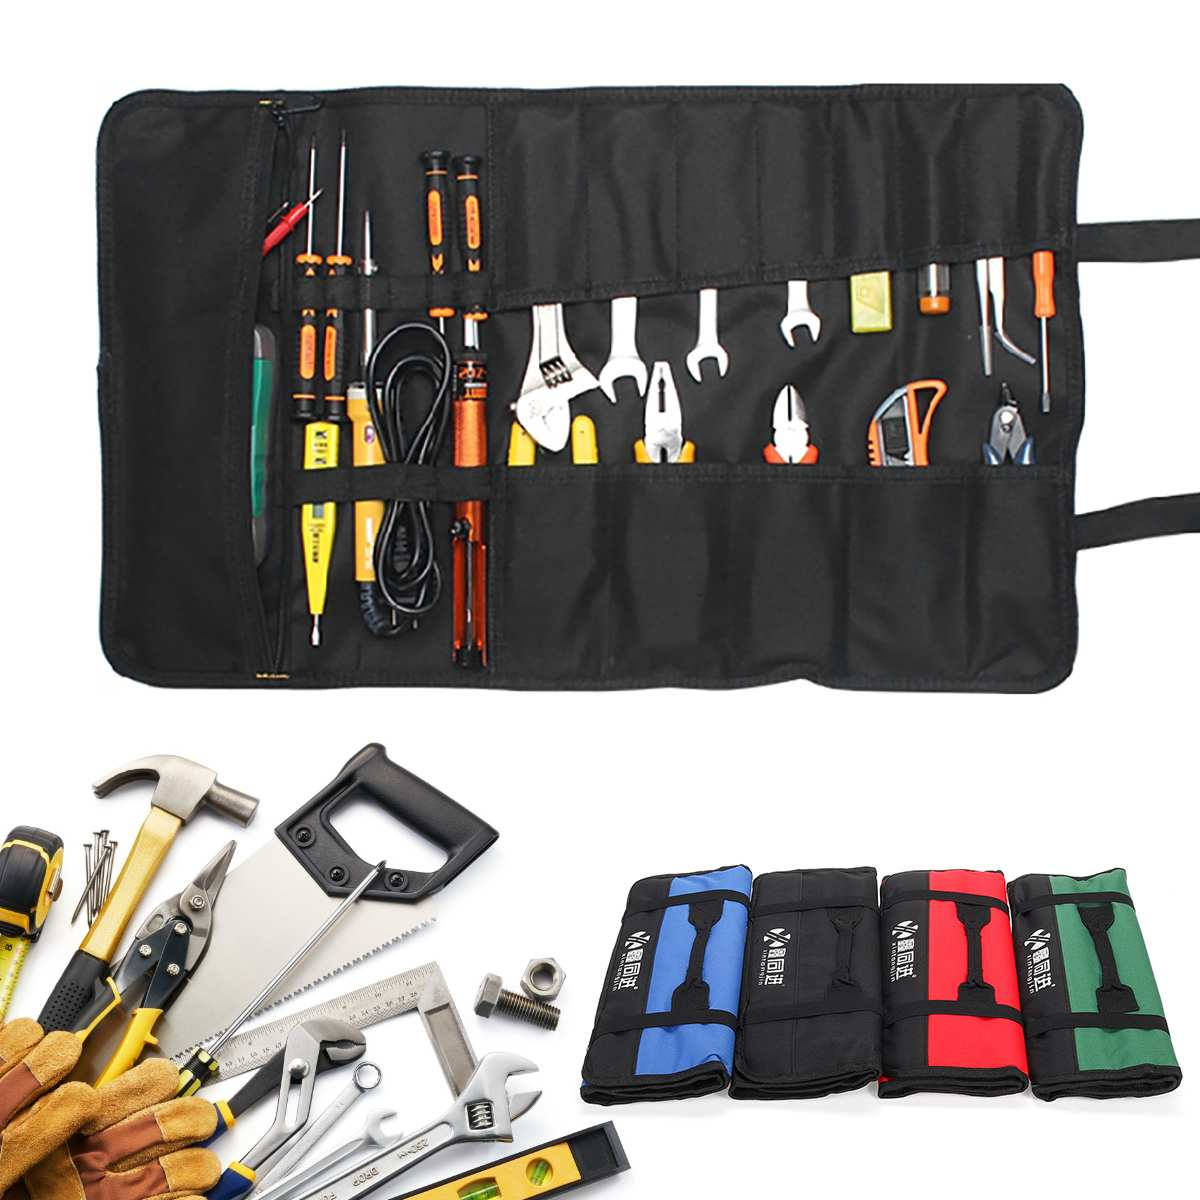 Cloth-Bags Wrench Screwdriver Pocket-Roll-Bag Repair-Tool Multifunction Storage Oxford